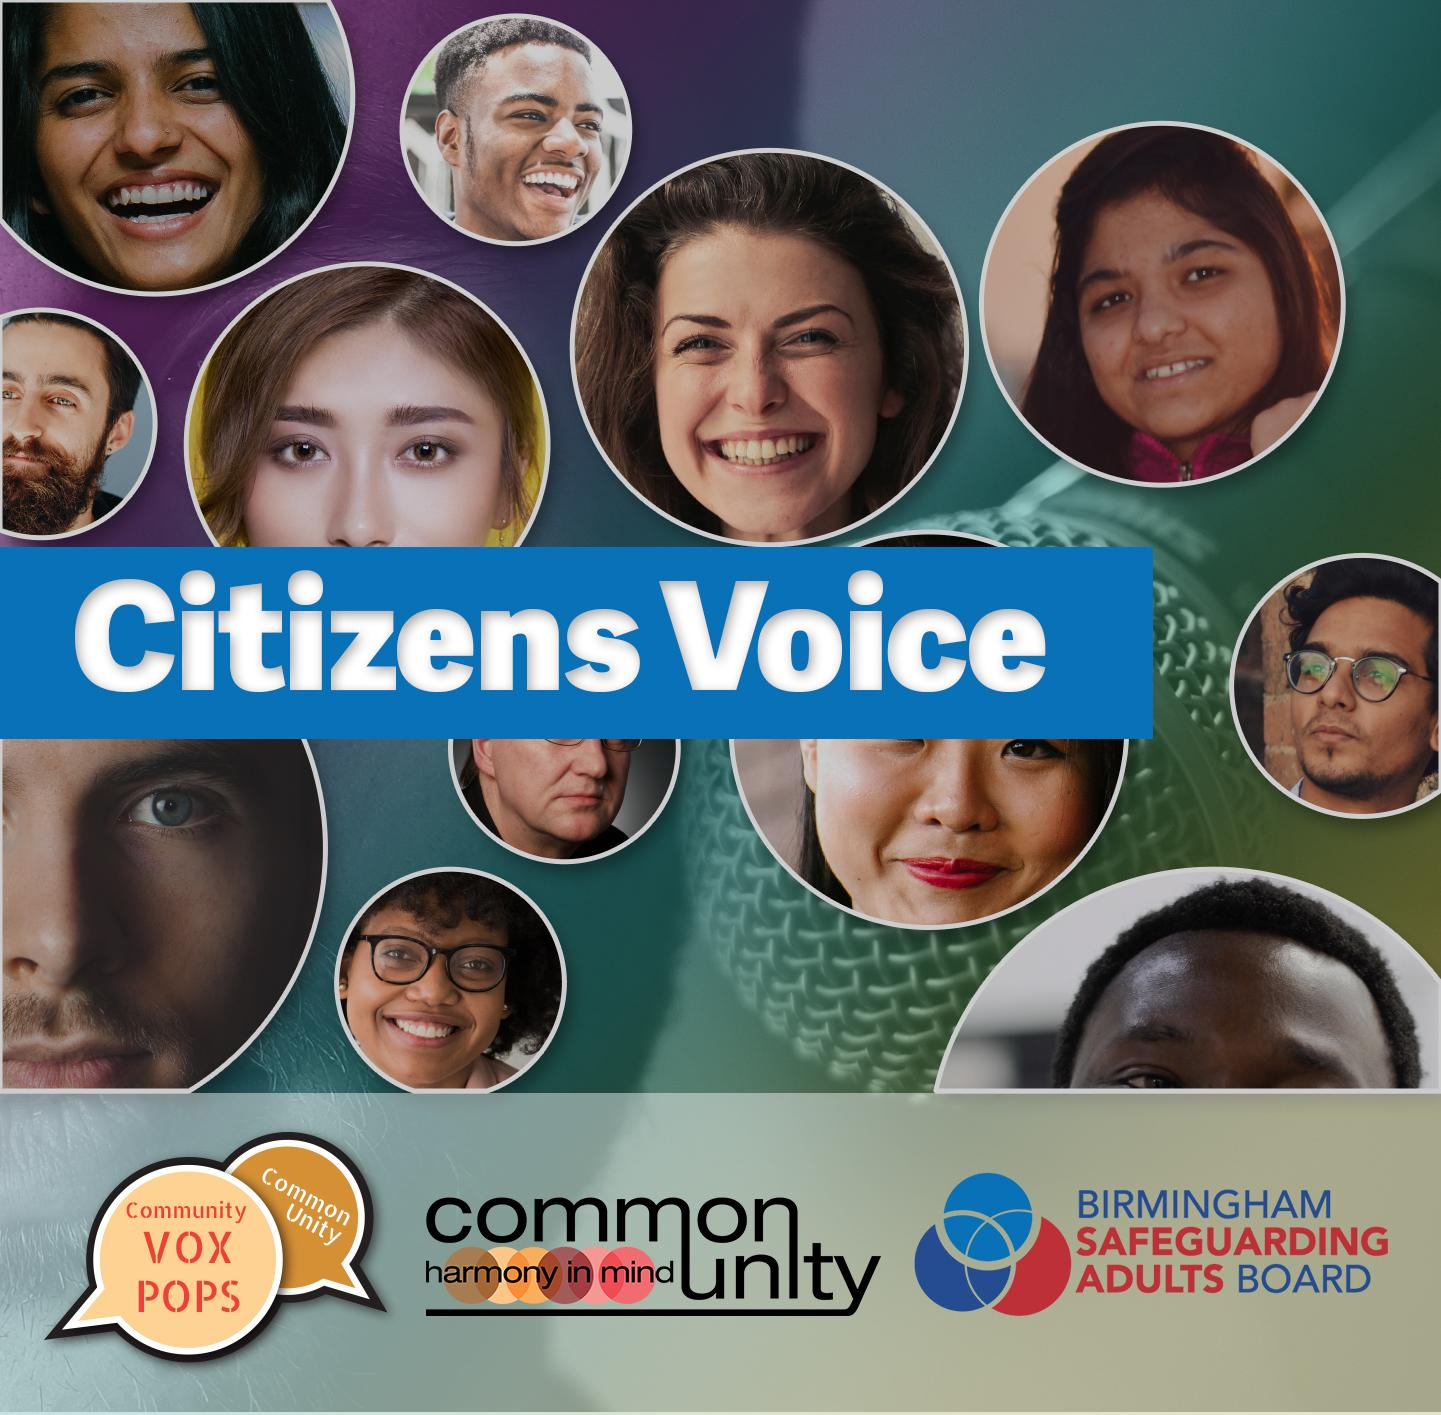 The Citizen's Voice